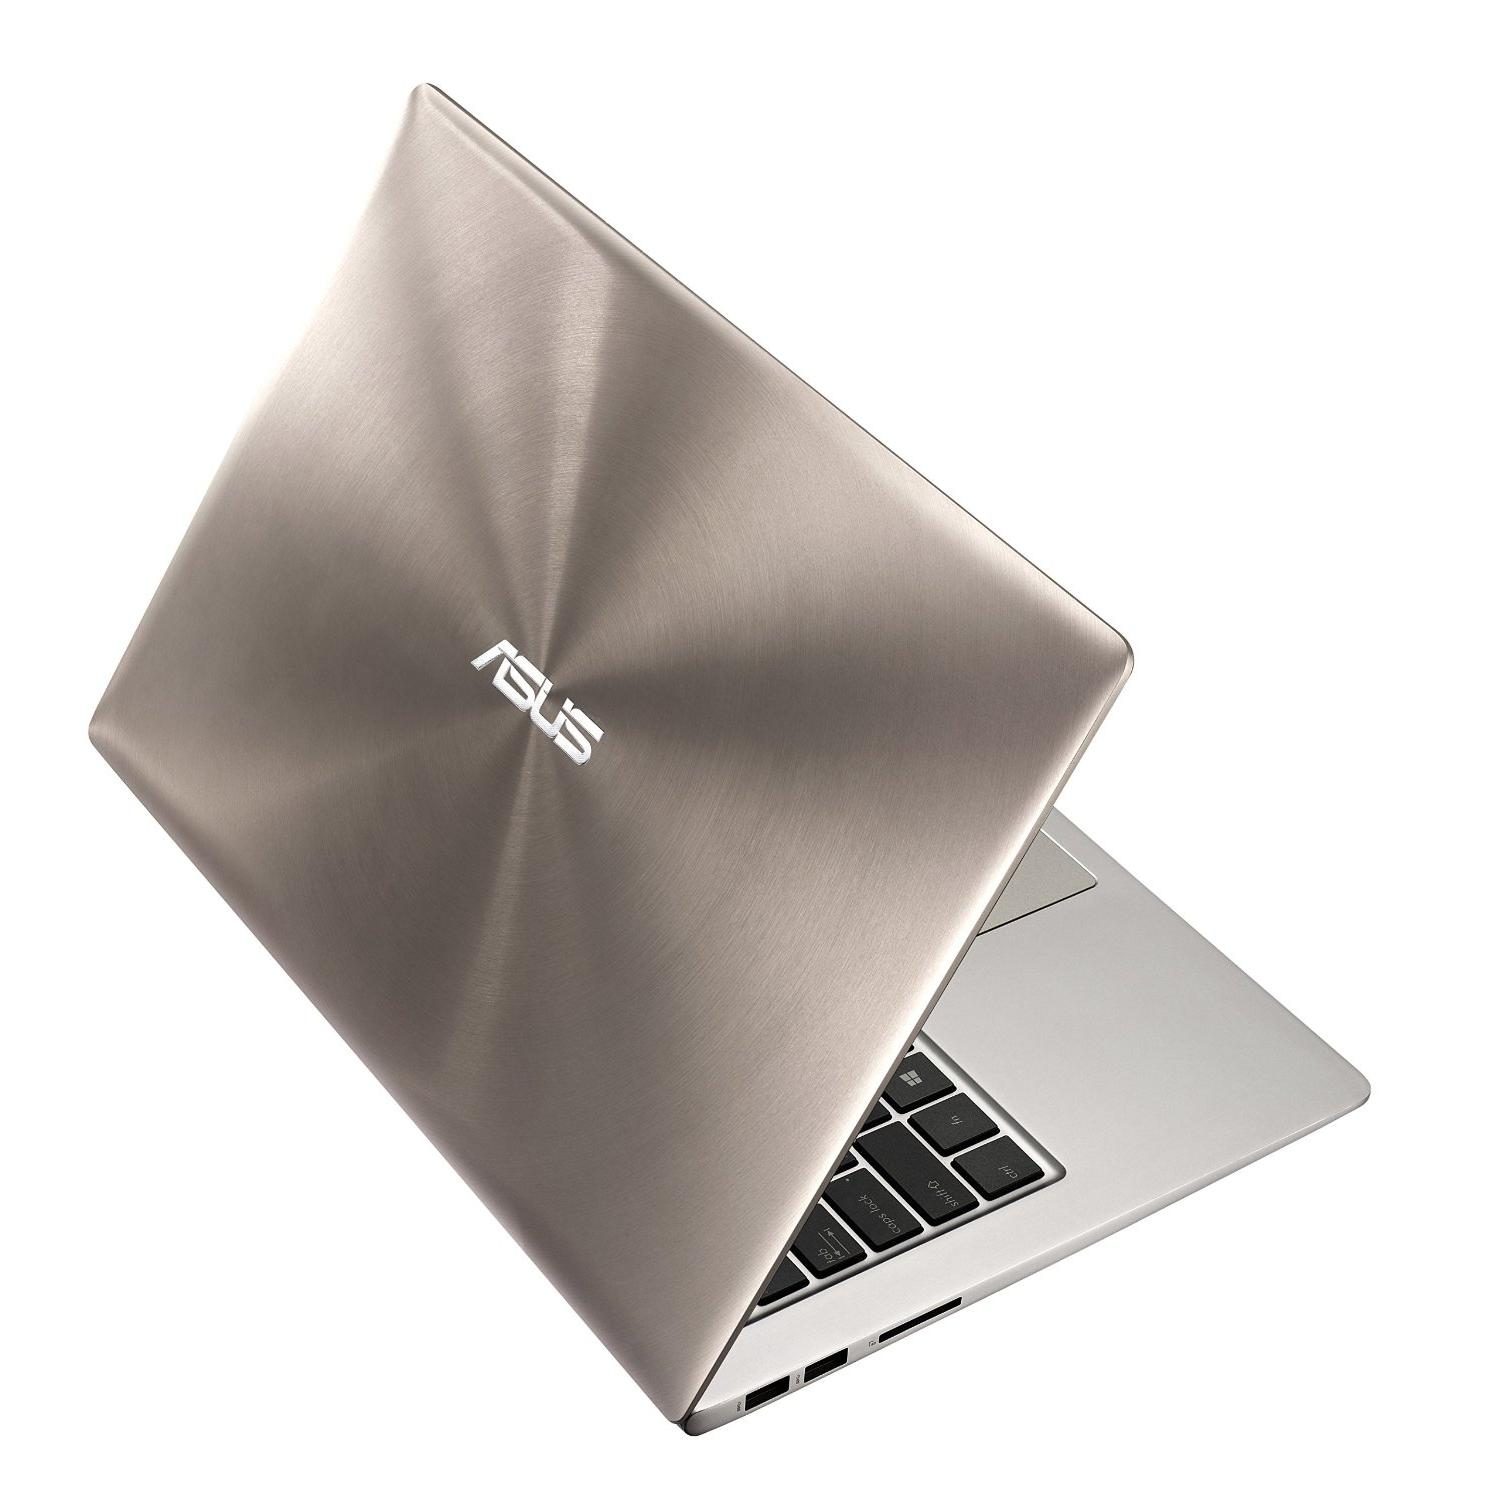 "ASUS ZenBook UX303LA 13.3"" Core i5 1,7 GHz - HDD 512 GB + SSD 8 GB - RAM 6 GB - QWERTY"